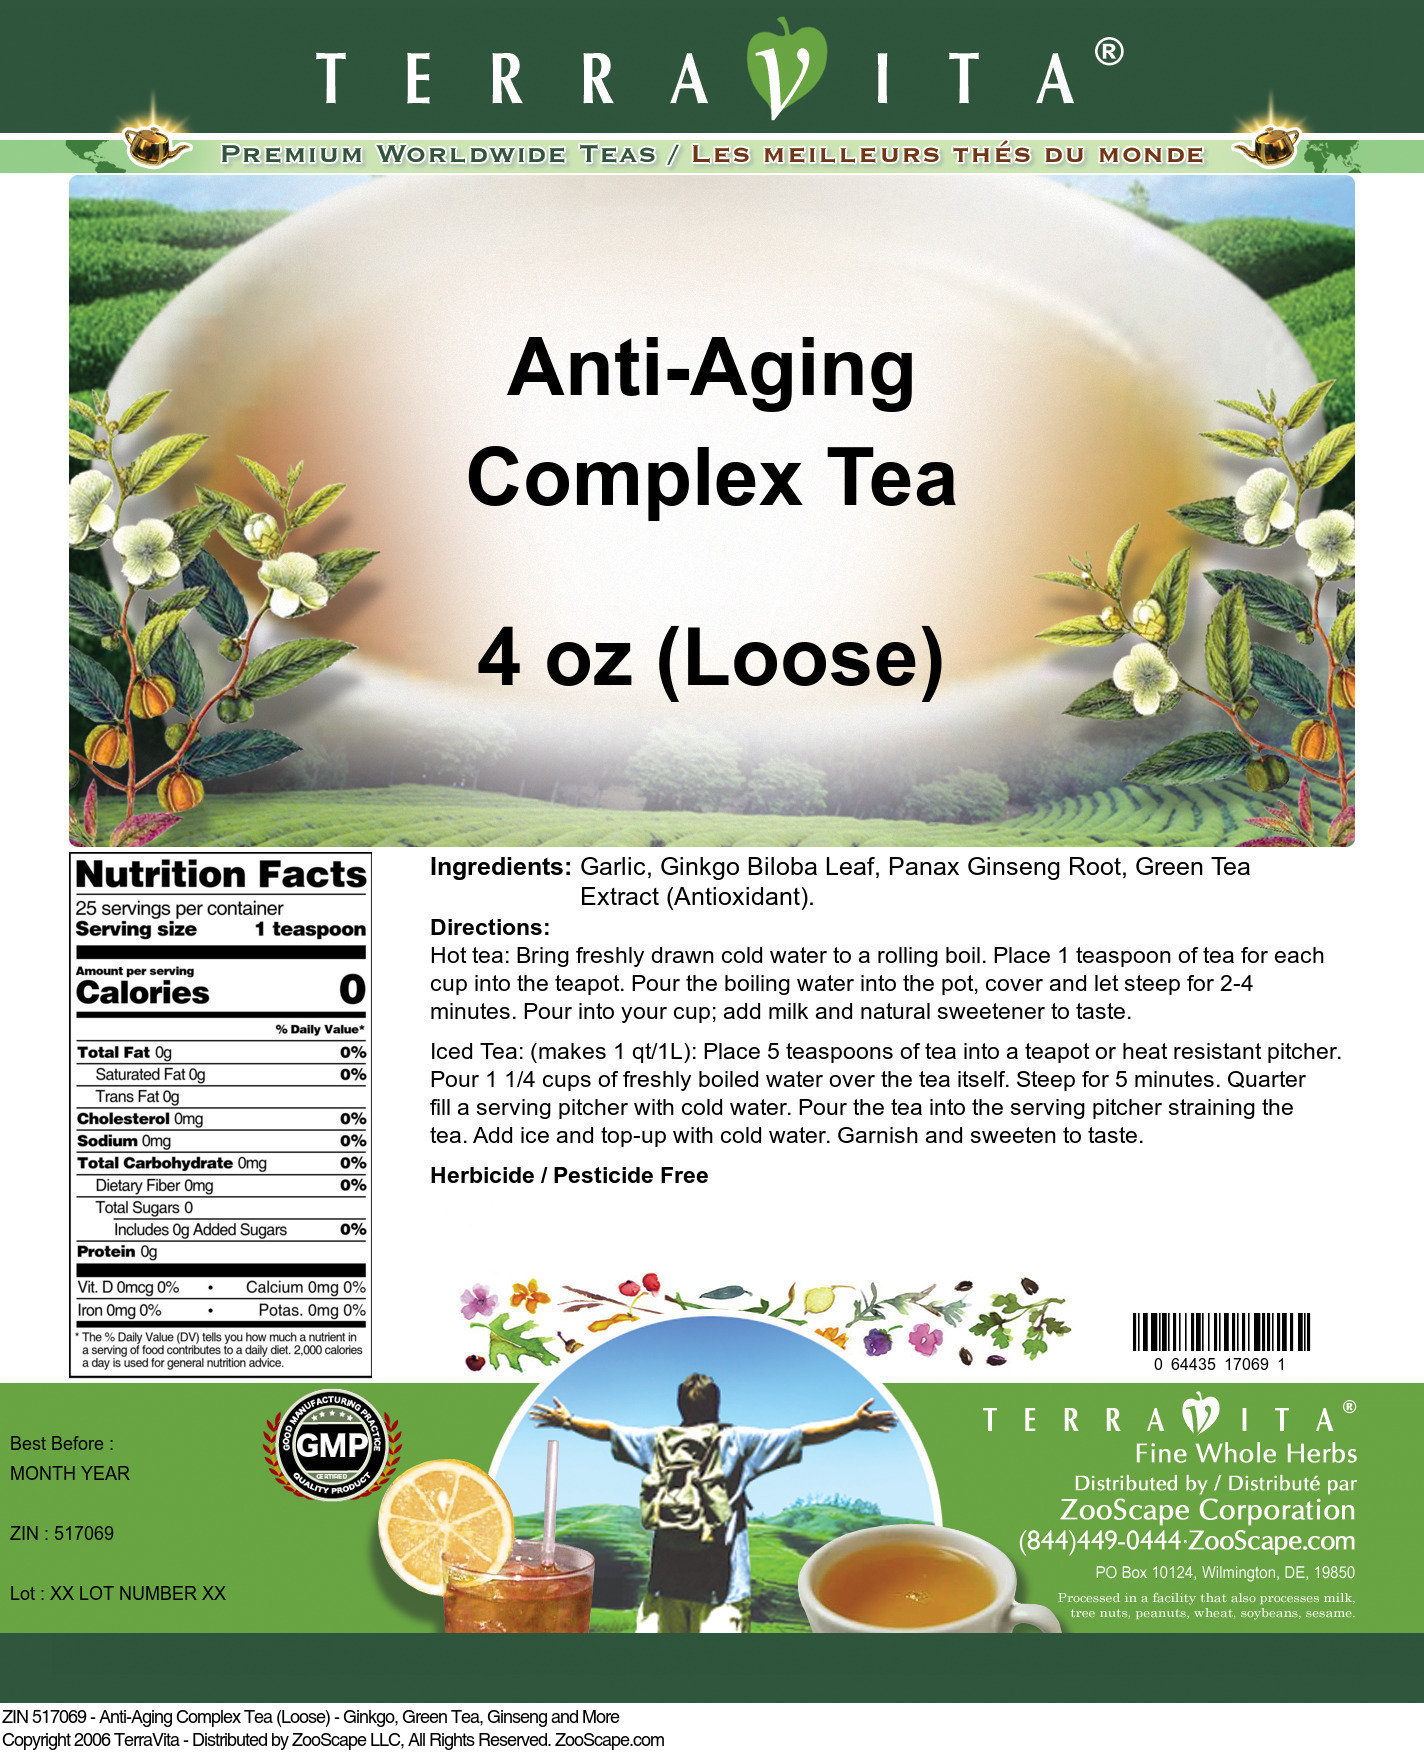 Anti-Aging Complex Tea (Loose) - Ginkgo, Green Tea, Ginseng and More